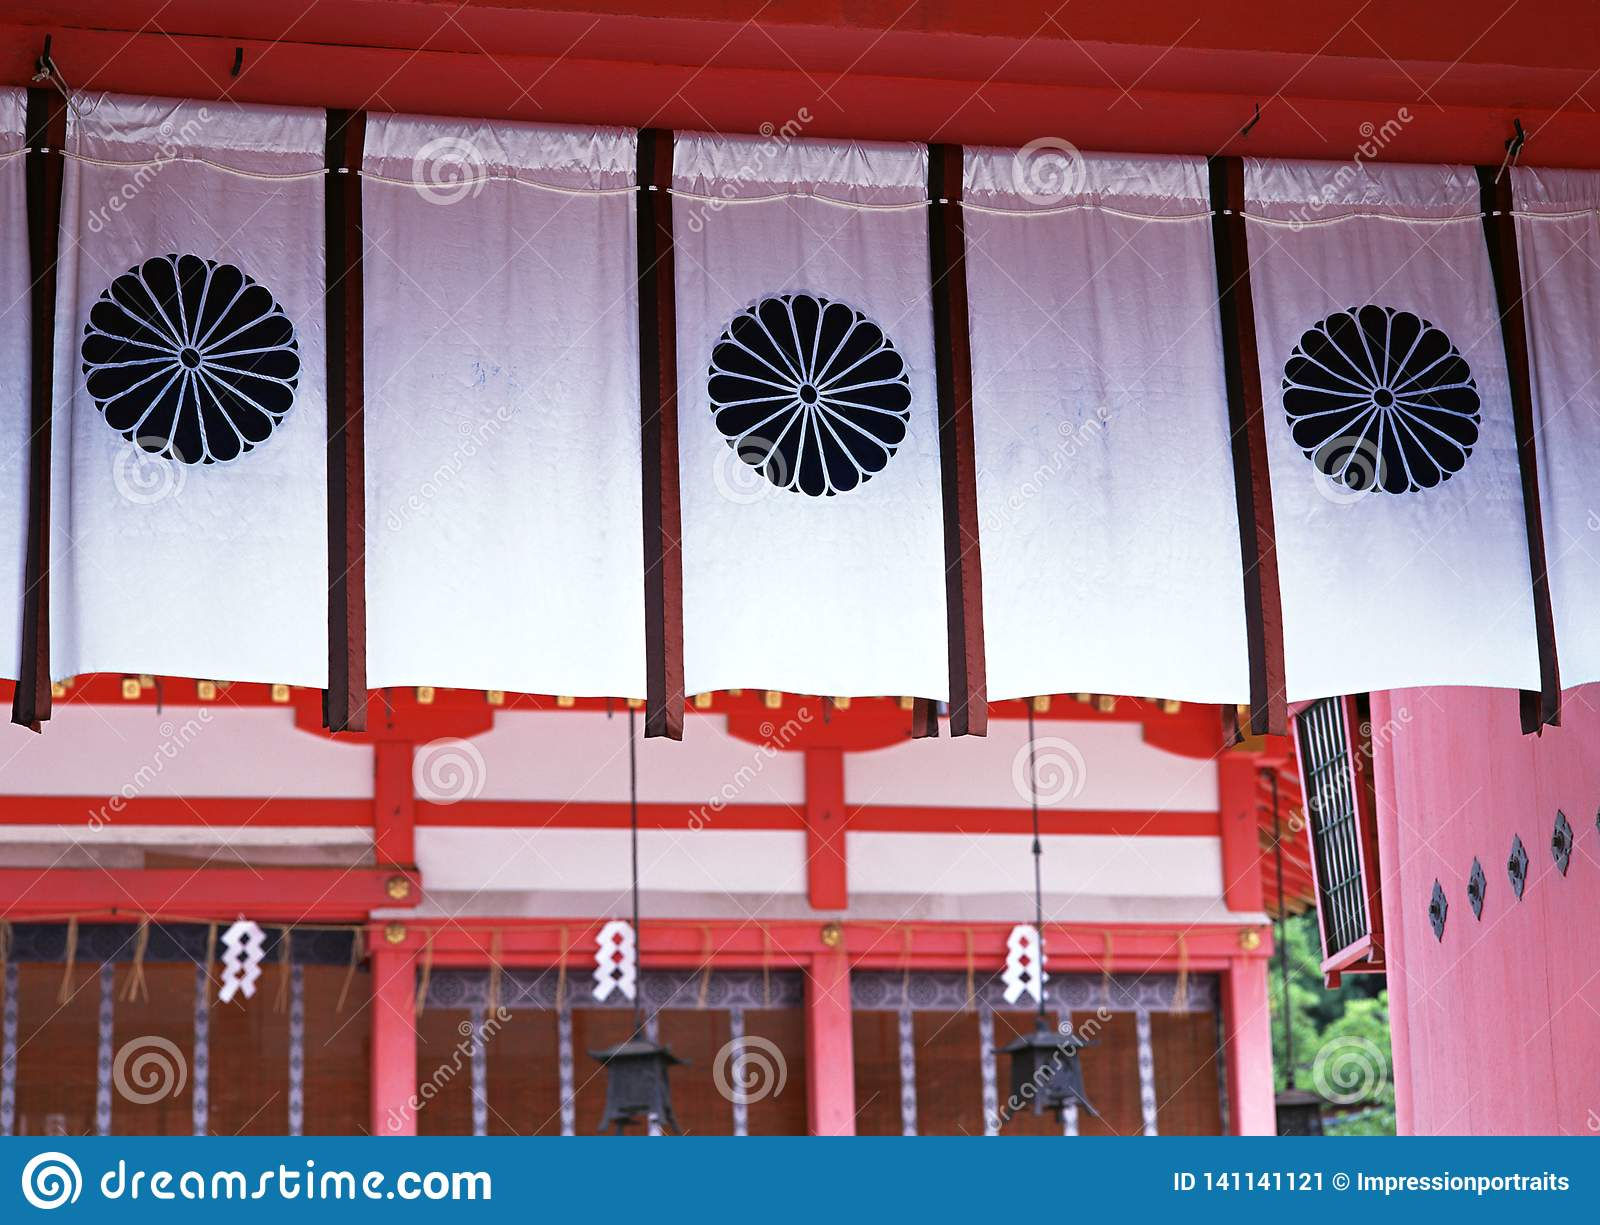 Japanese architectural white display curtains with floral patterns in it background